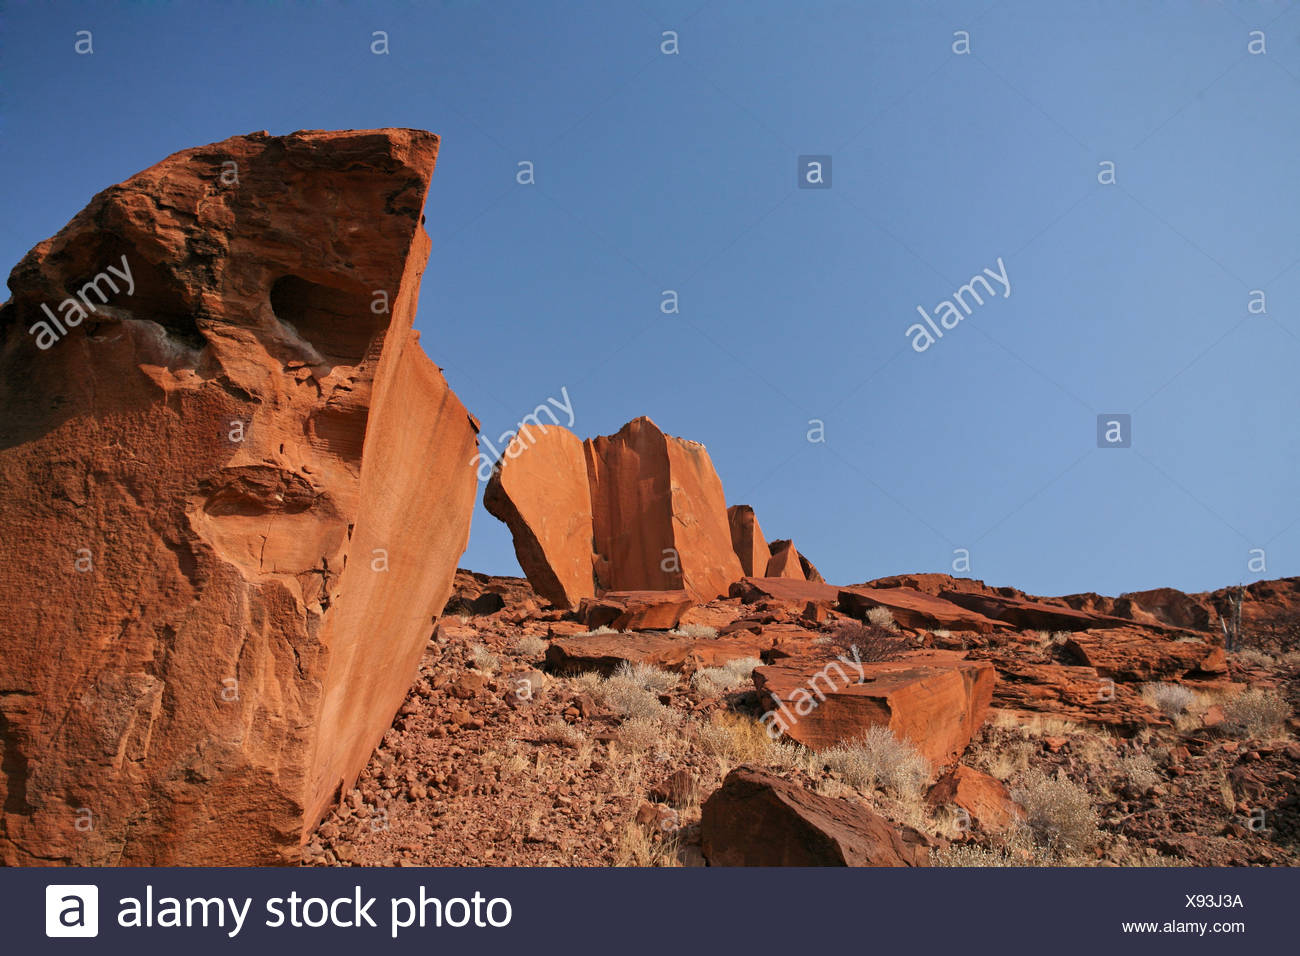 Namibia Africa Twyfelfontein Summer 2007 Africa rock formation desert rocky nature erosion landscape - Stock Image